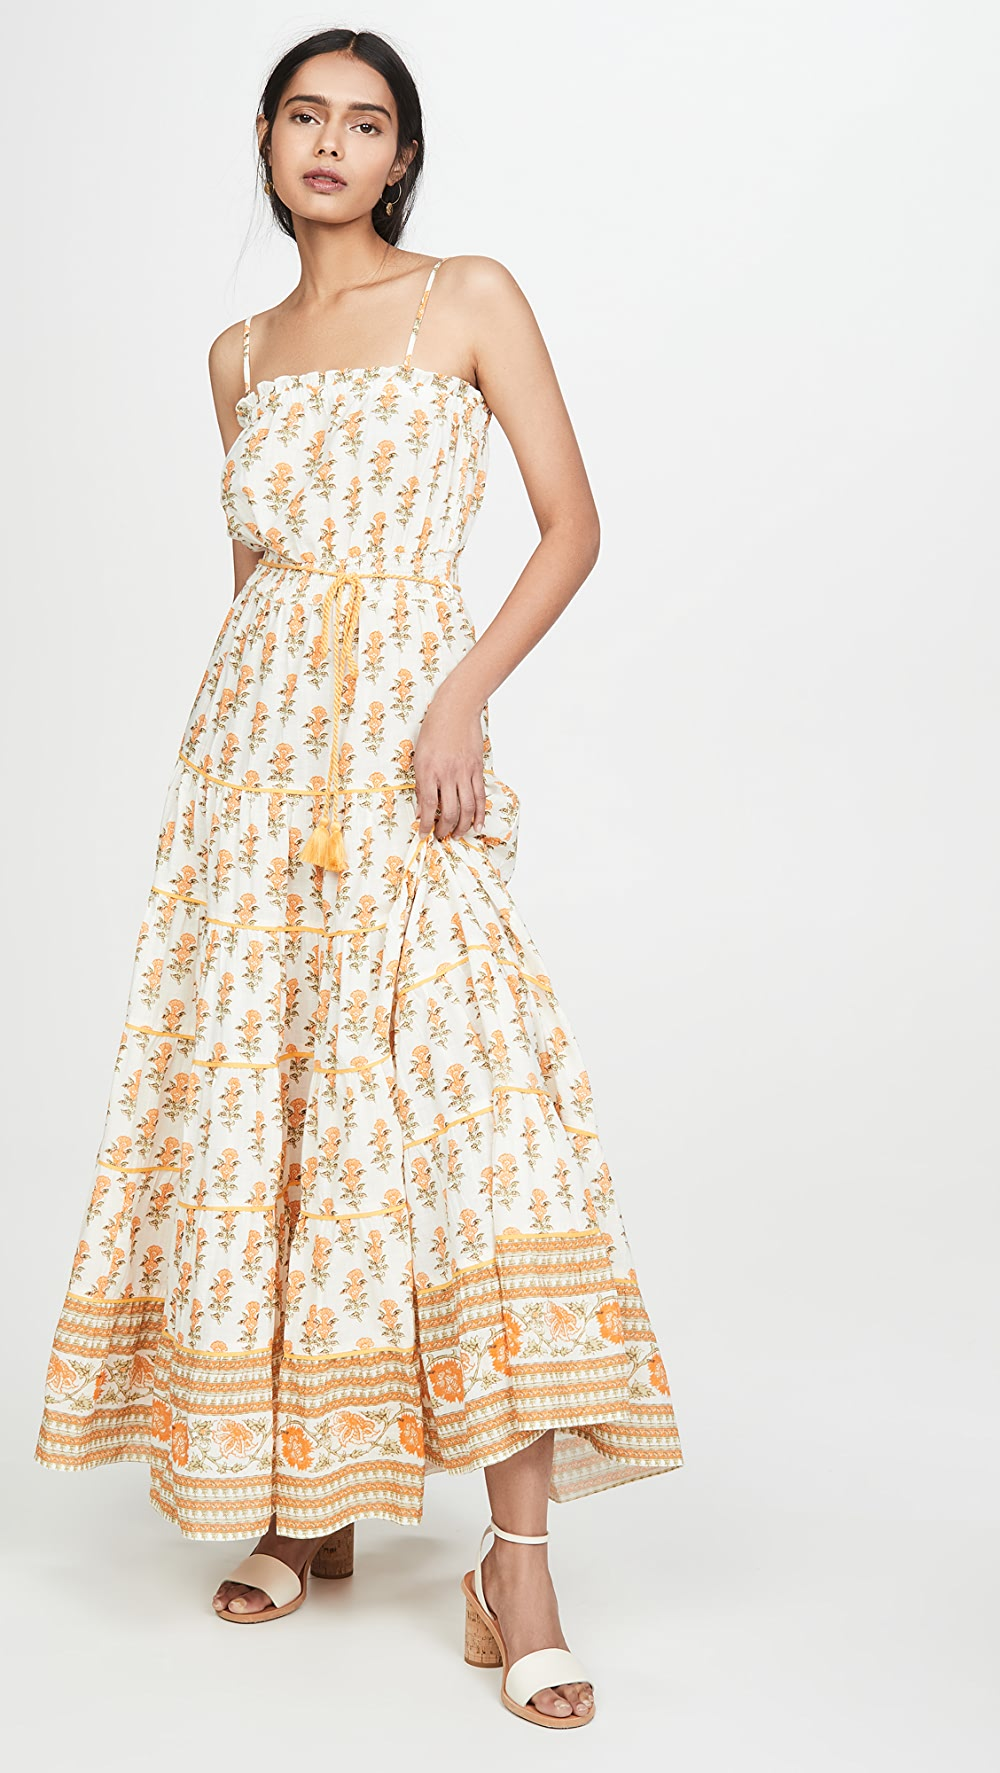 Steady Playa Lucila - Sleeveless Floral Maxi Dress Fixing Prices According To Quality Of Products